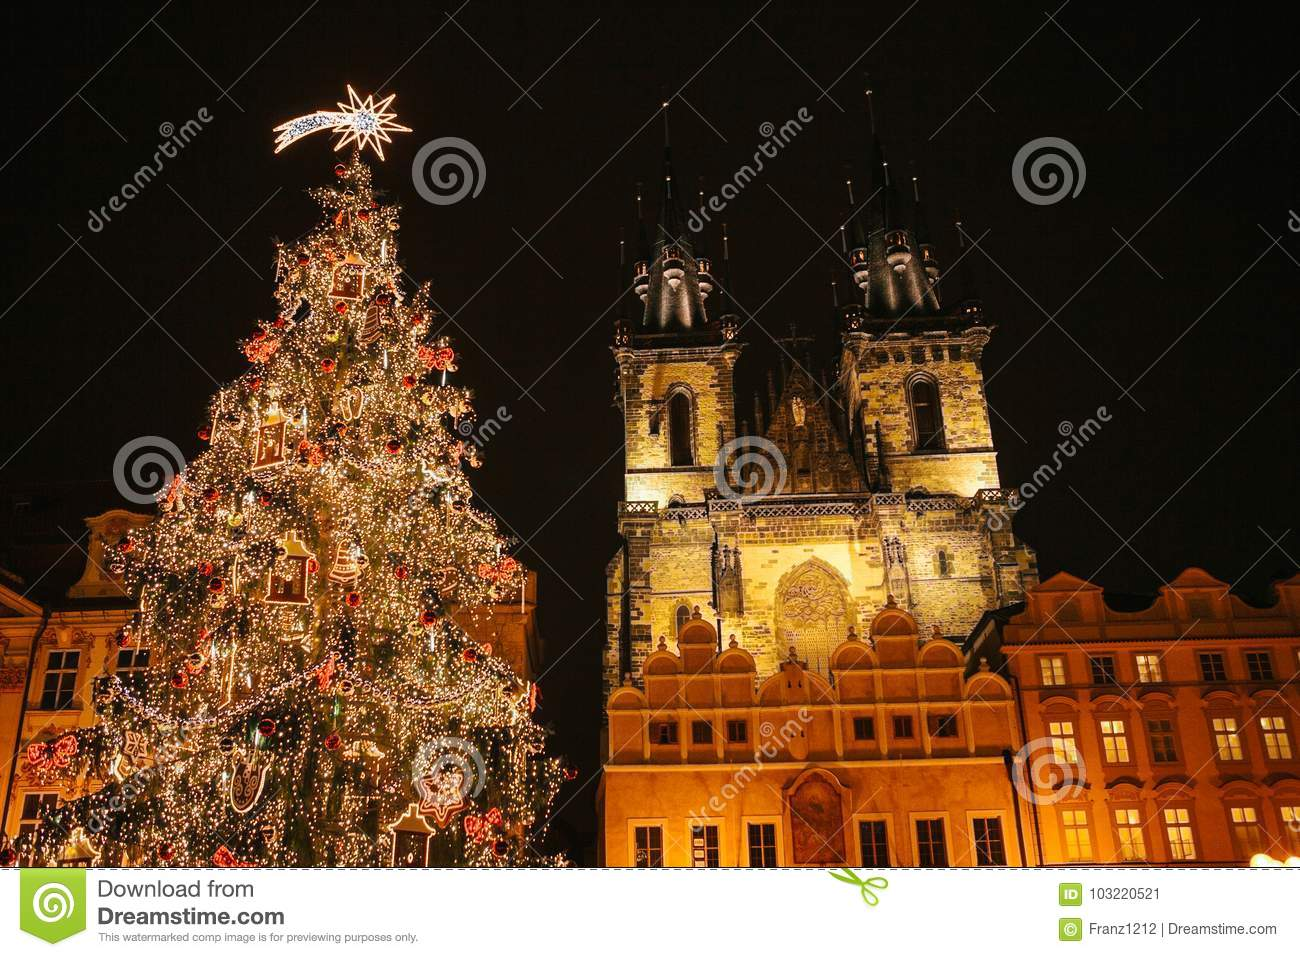 download decorated christmas tree stands on the main square in prague during the new year holidays